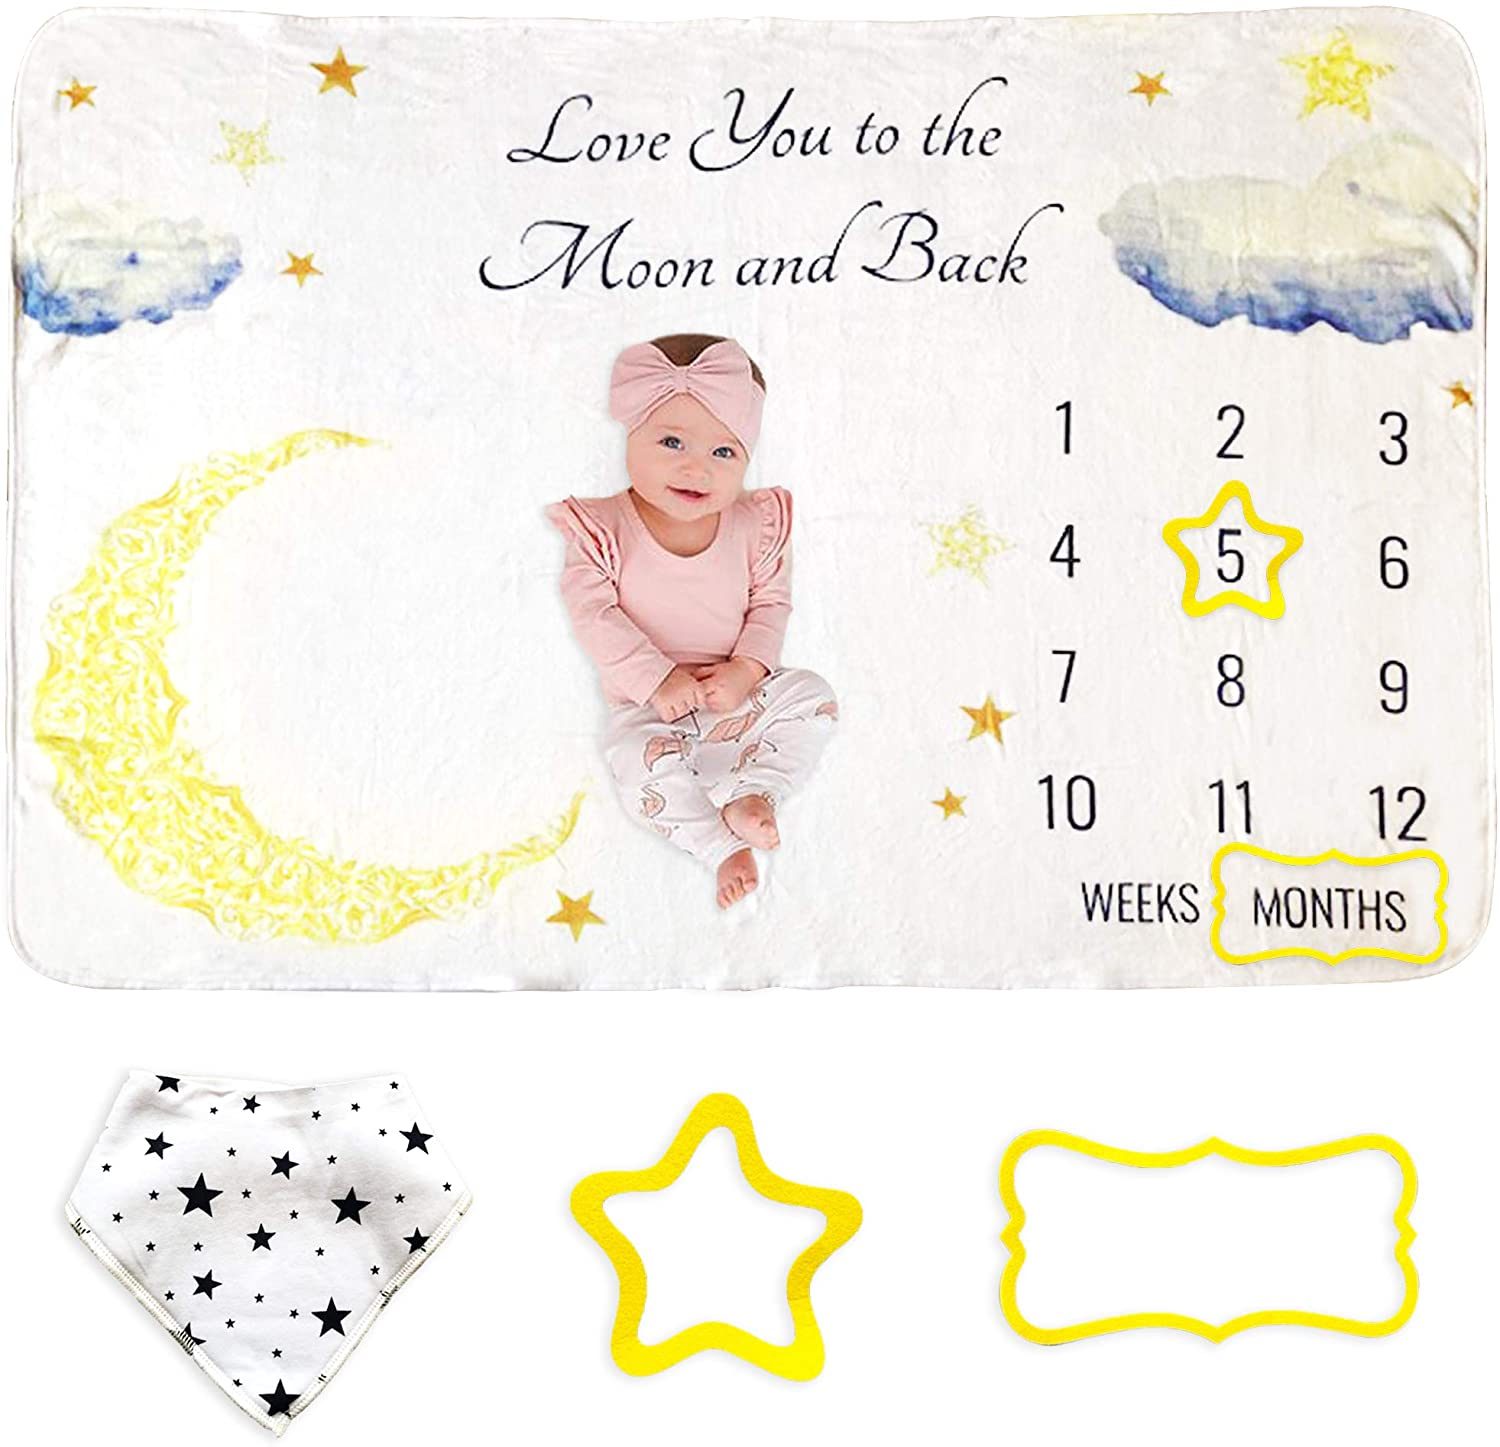 Baby Monthly Milestone Blanket | Baby Photo Blanket for Newborn Babies | Soft & Fluffy 60x40 inches | Monthly Blanket for Baby Pictures, Includes Bandana Drool Bib + 2 Frames